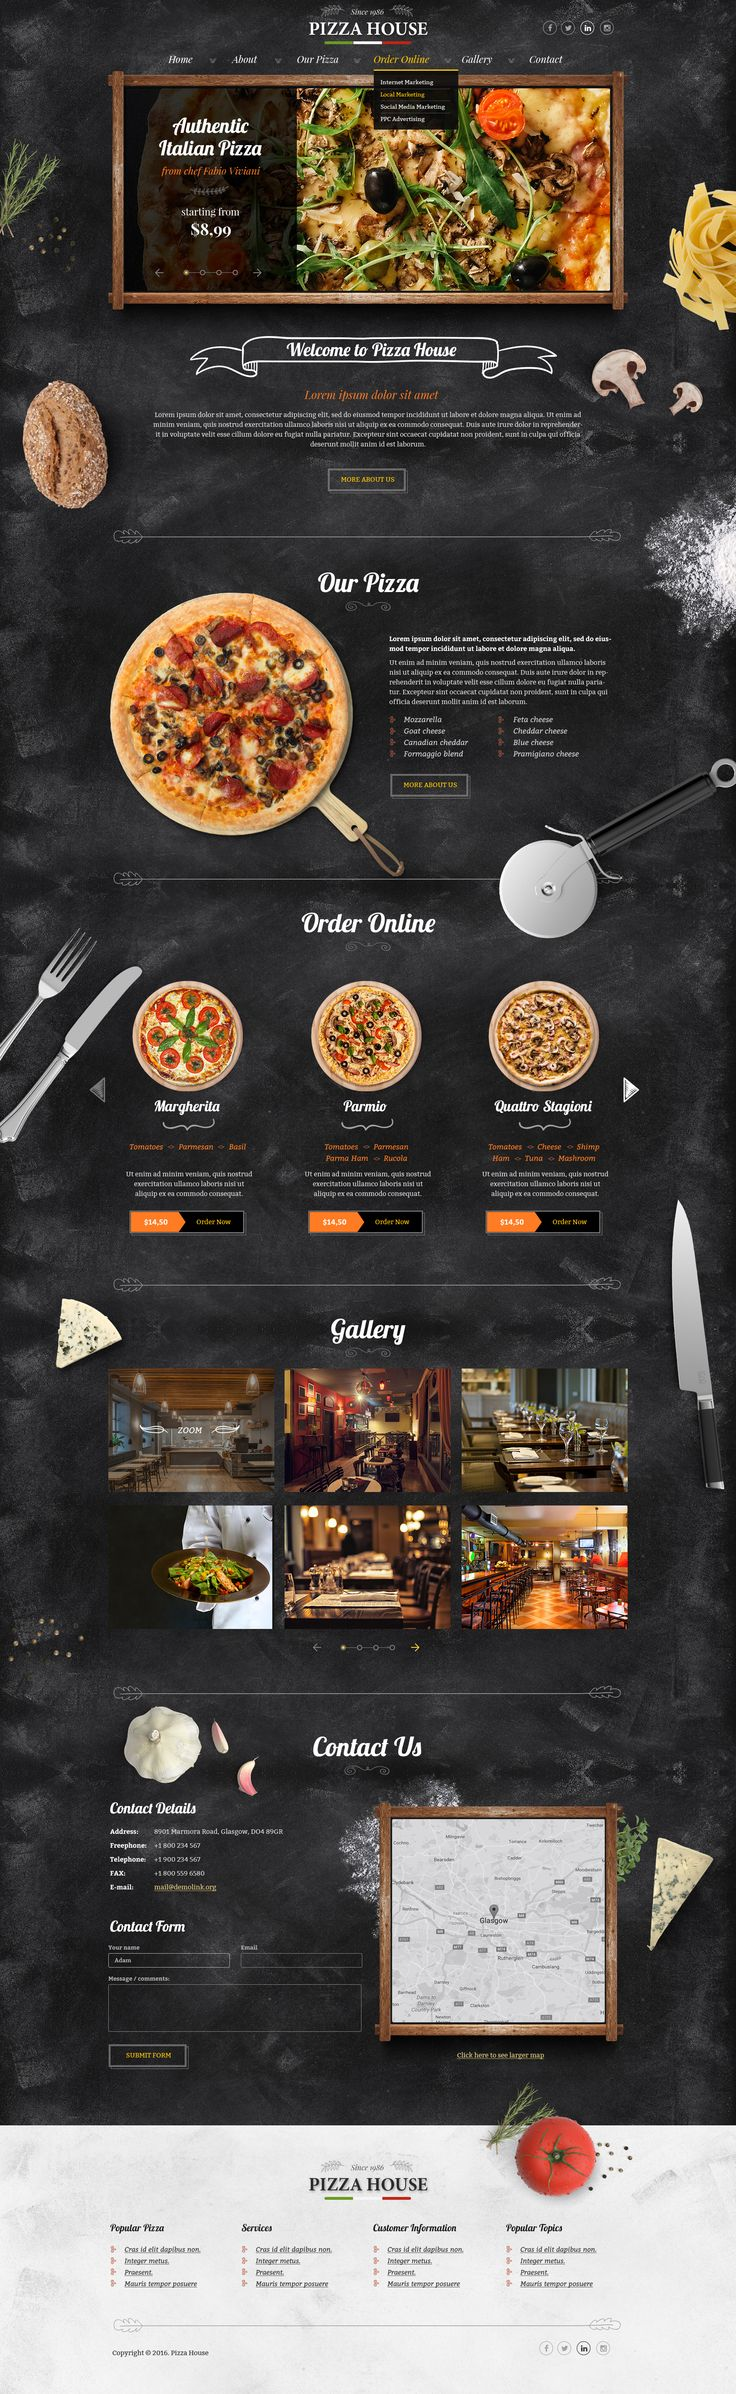 Bootstrap Website template for Pizzeria. tags: pizza website template, pizza templates, pizzeria website templates, template pizza, pizza site template, pizza restaurant website templates, restaurant website templates, restaurant template, template restau